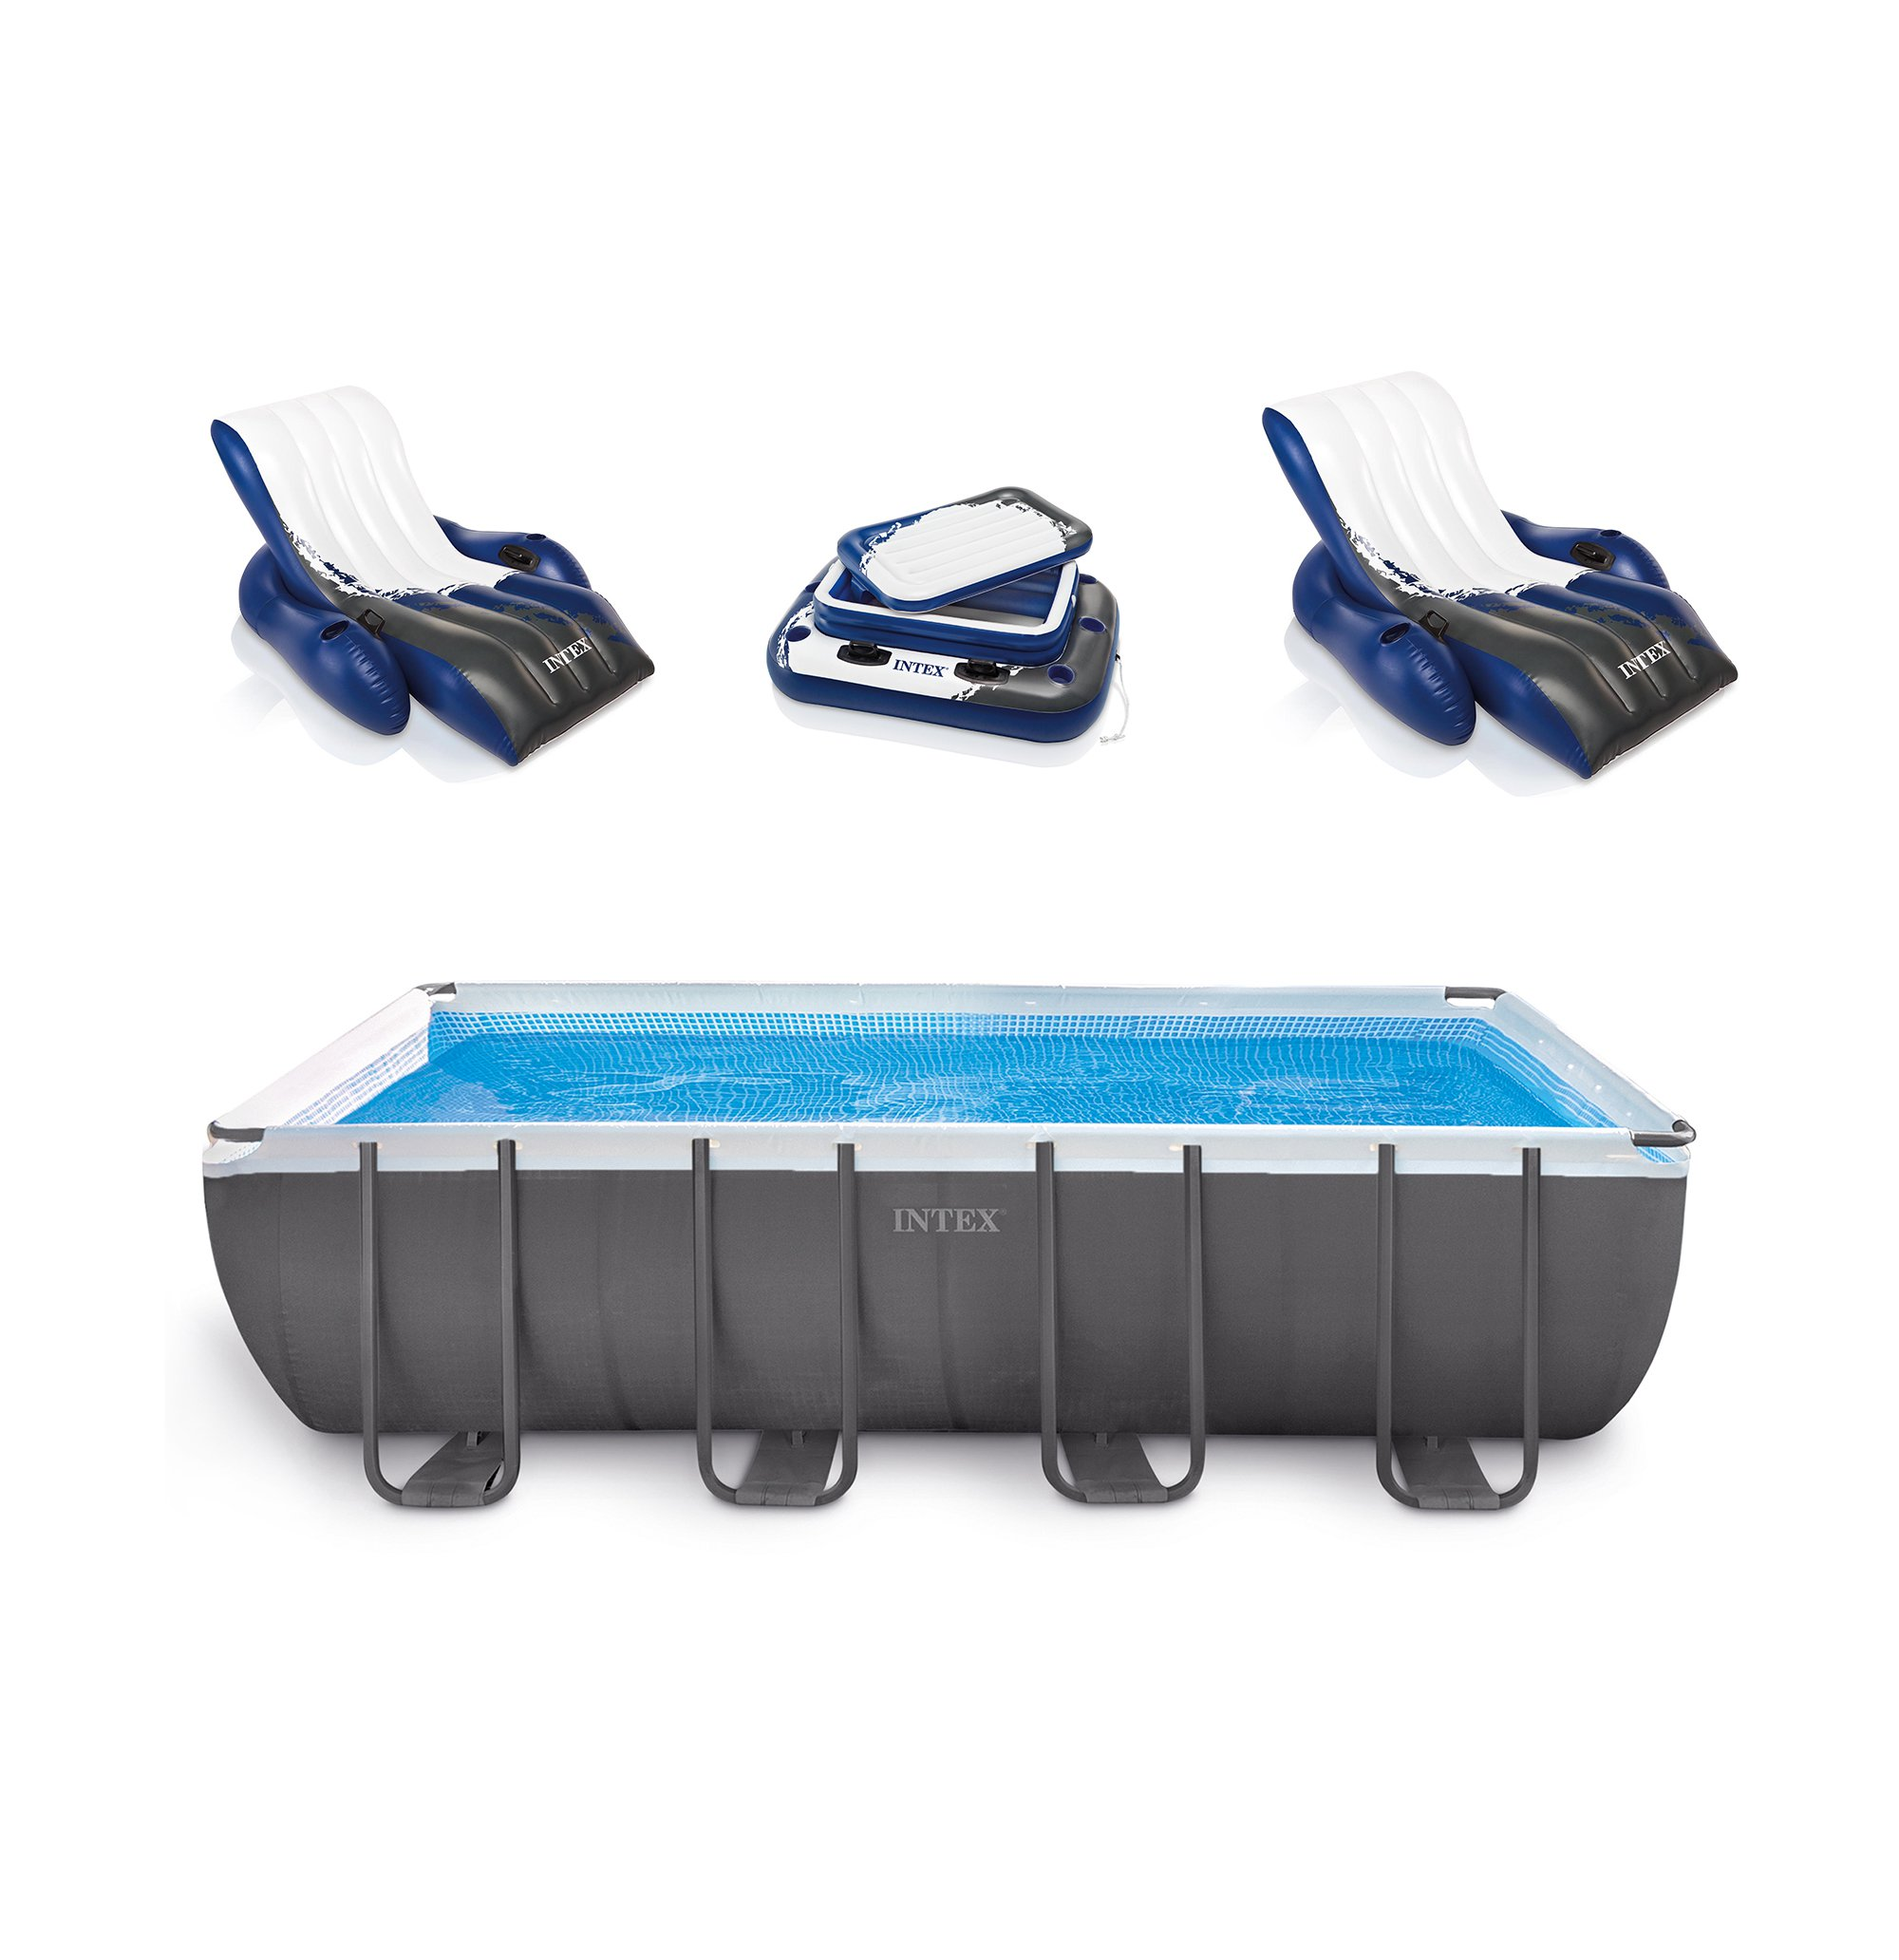 "Intex 18' x 9' x 52"" Ultra Frame Rectangular Above Ground Pool Set with Floats by Above Ground Pools"